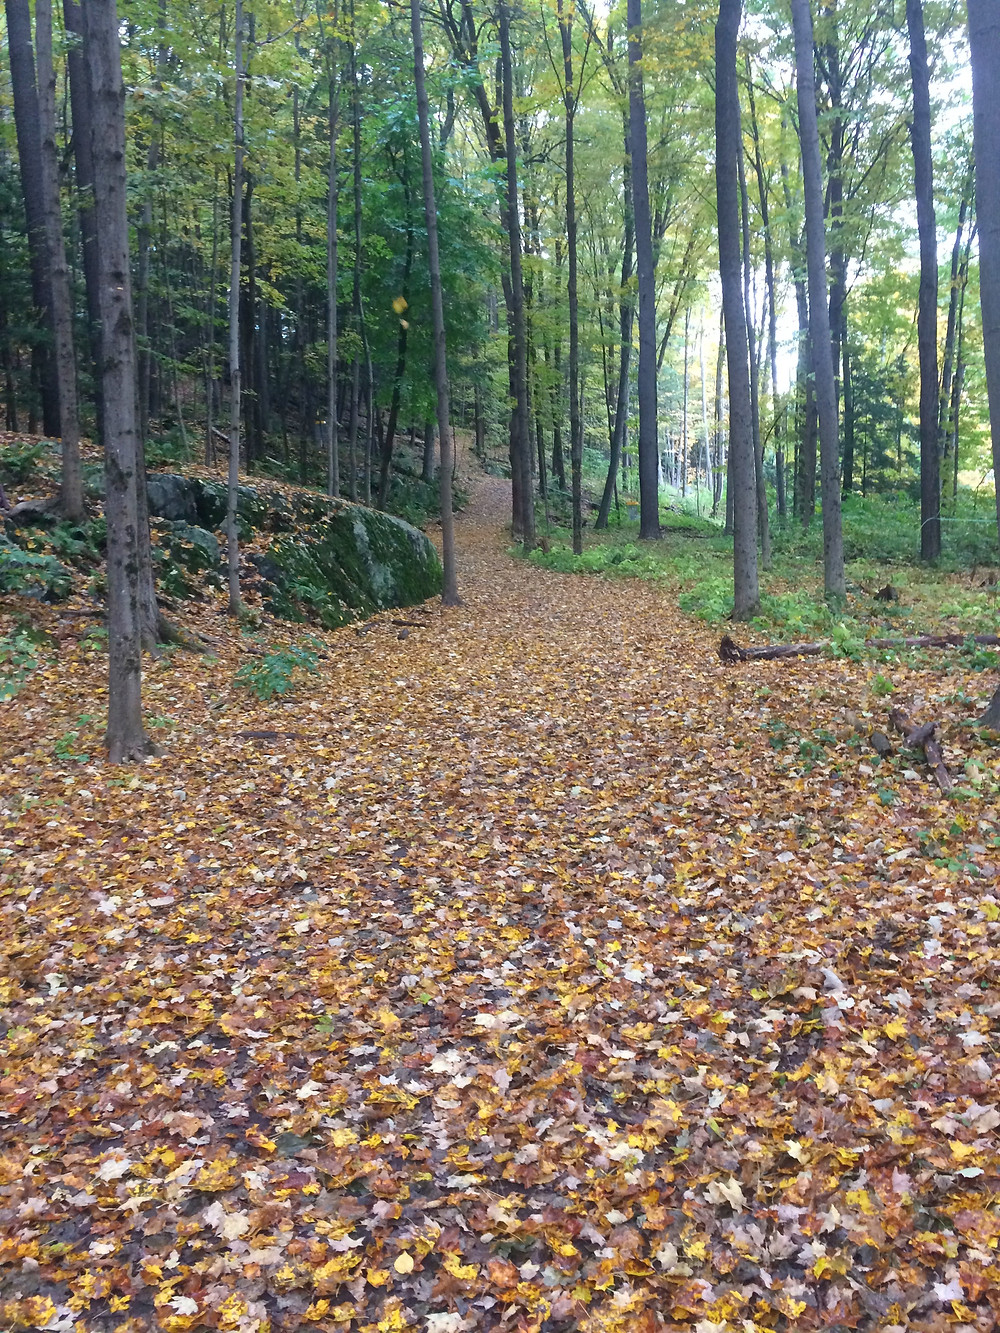 Image of a walking path covered in leaves